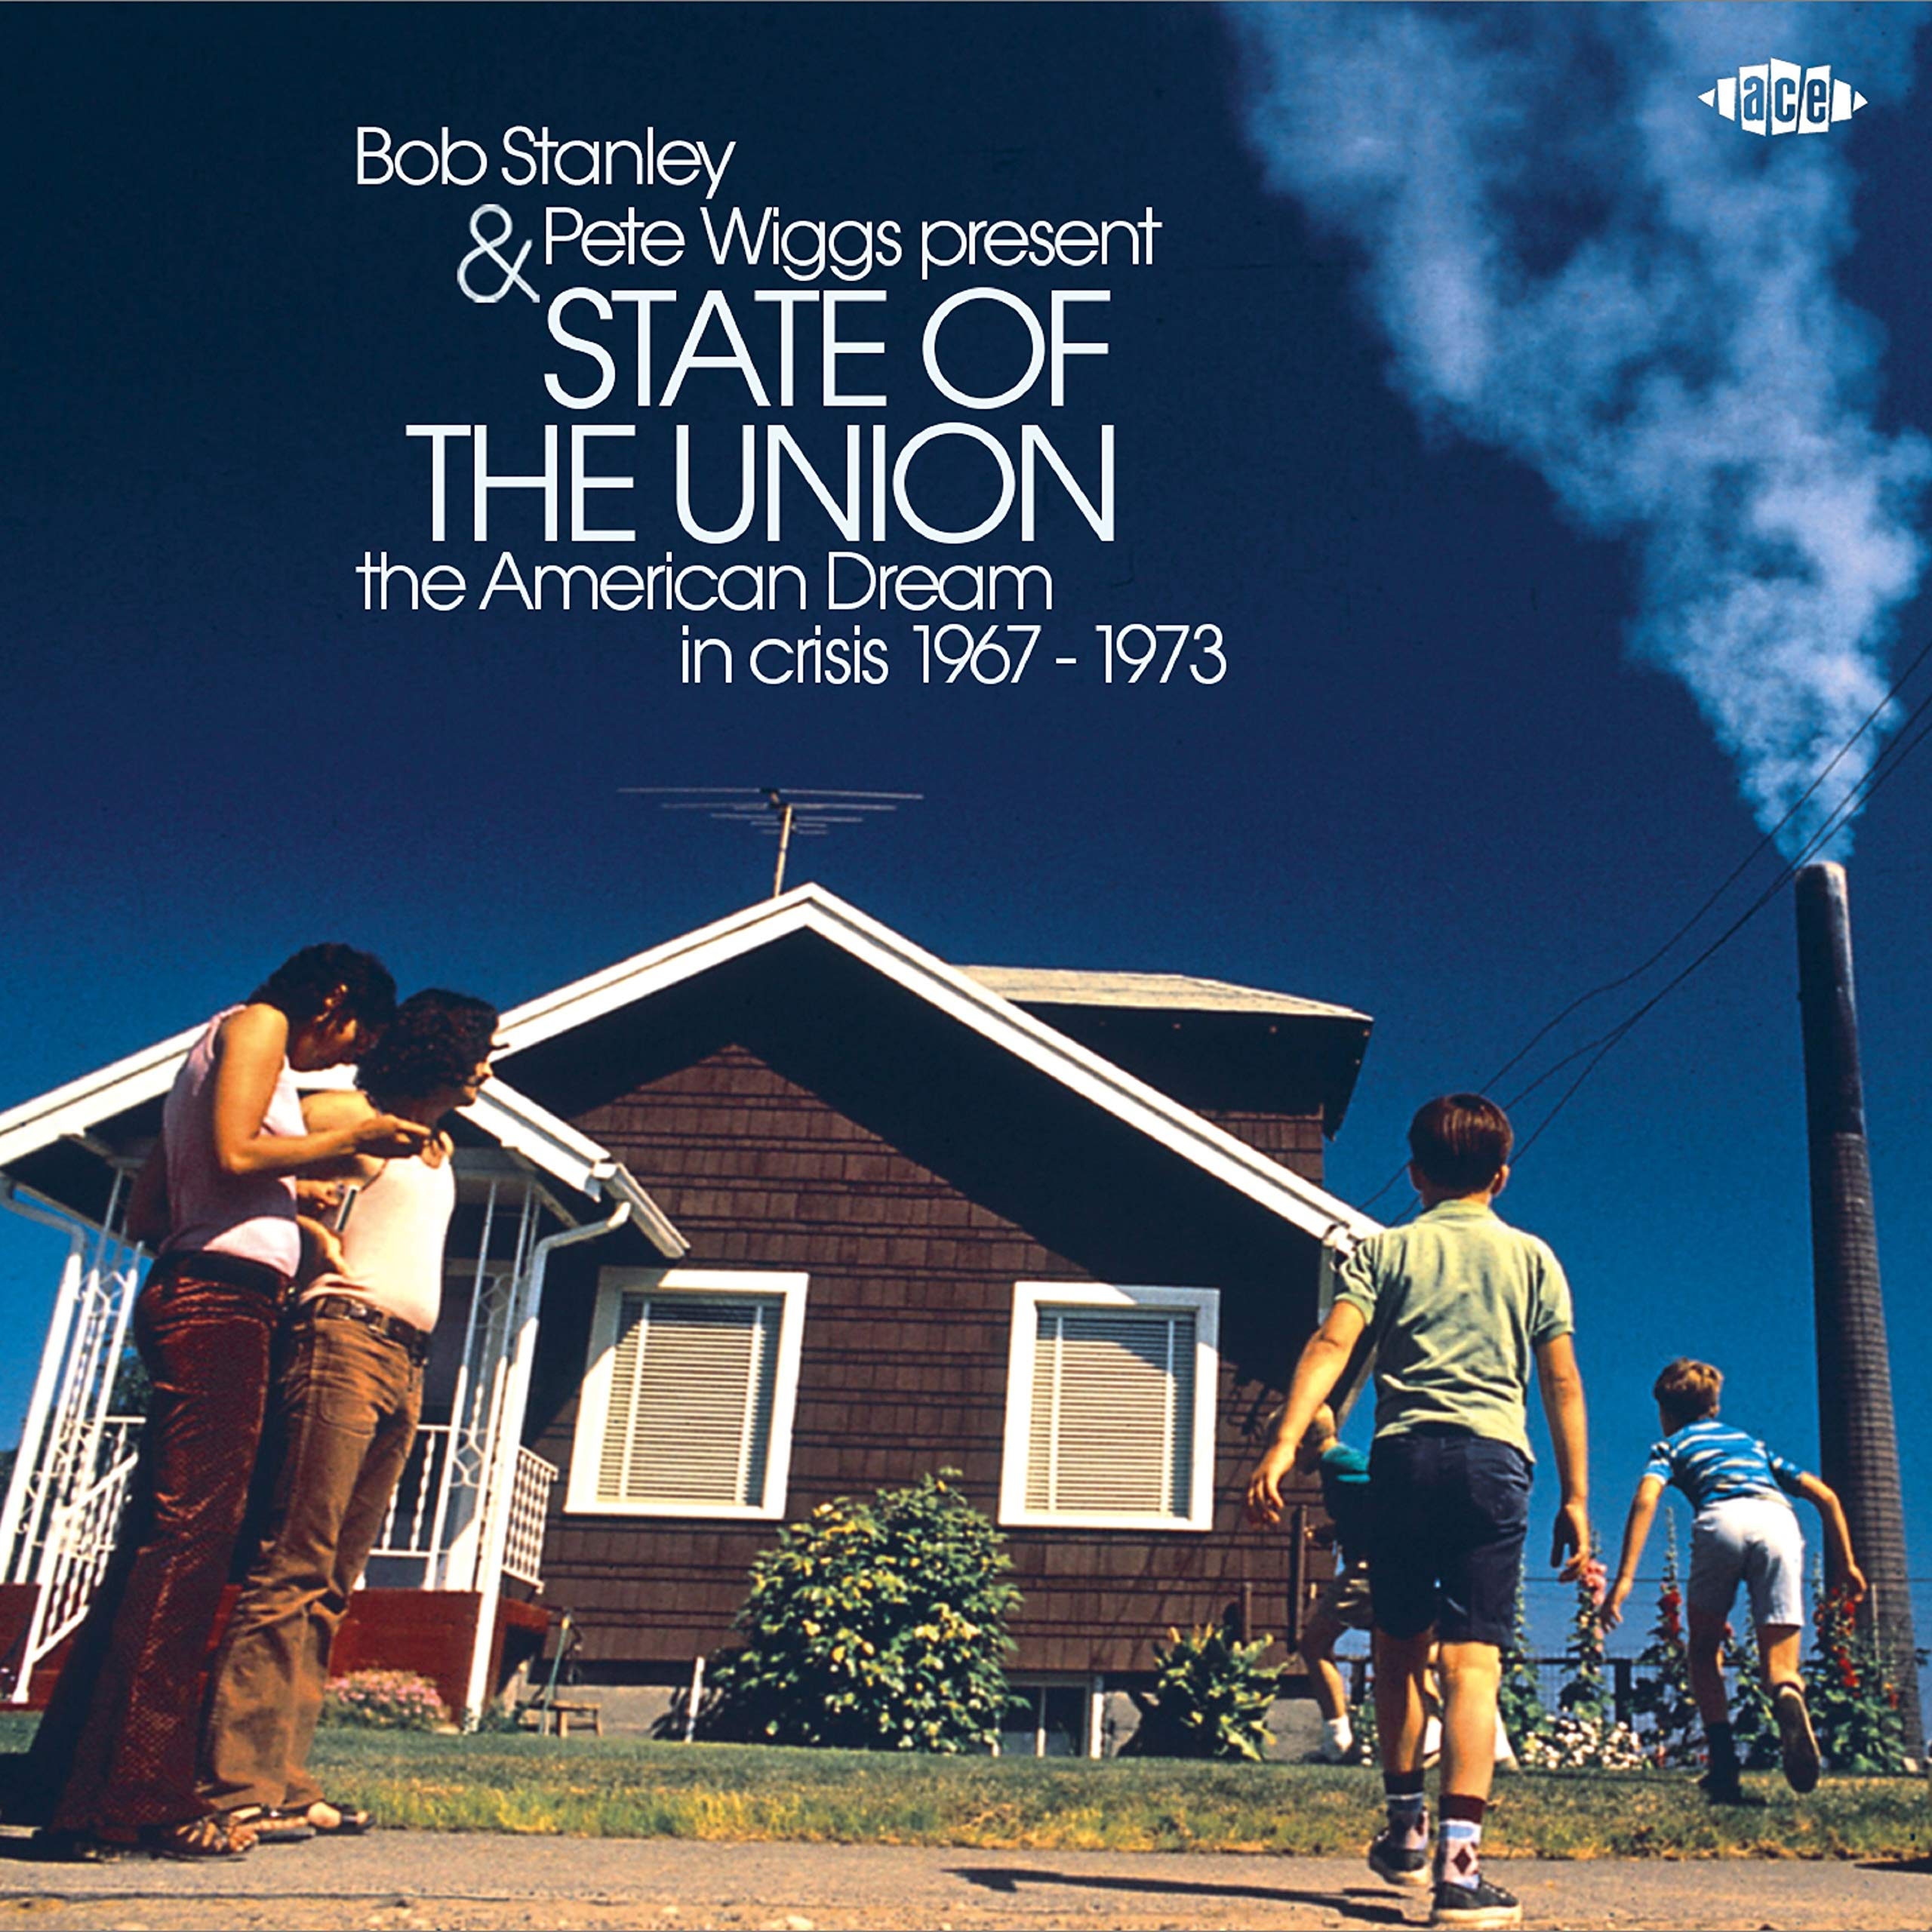 Vinilo : VARIOUS ARTISTS - Bob Stanley & Pete Wiggs Present State Of The Union: American Dream Incrisis 1967-1973 /  Various (United Kingdom - Import)